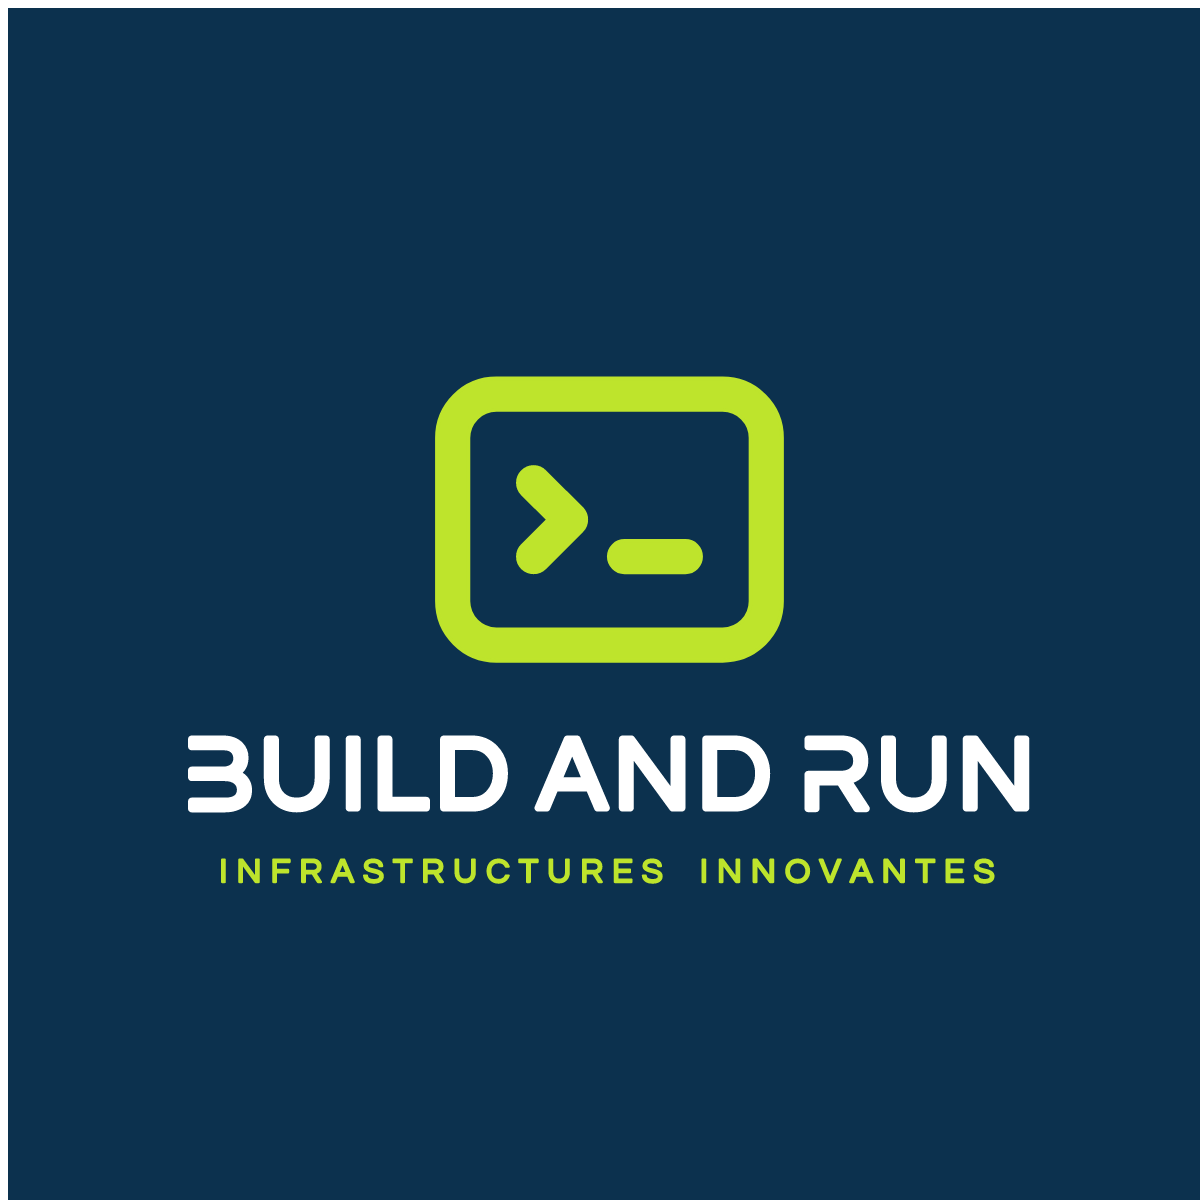 Build and Run